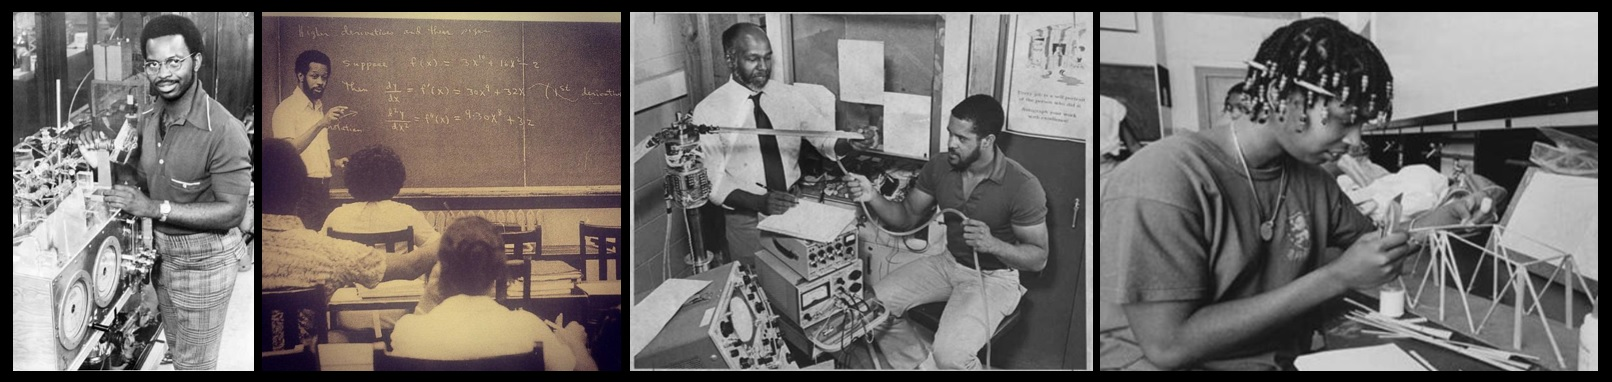 From the MIT Black History Project: Ronald McNair, James Hubbard, Jr. and Wesley Harris, Floyd Williams, Aprille Ericsson.